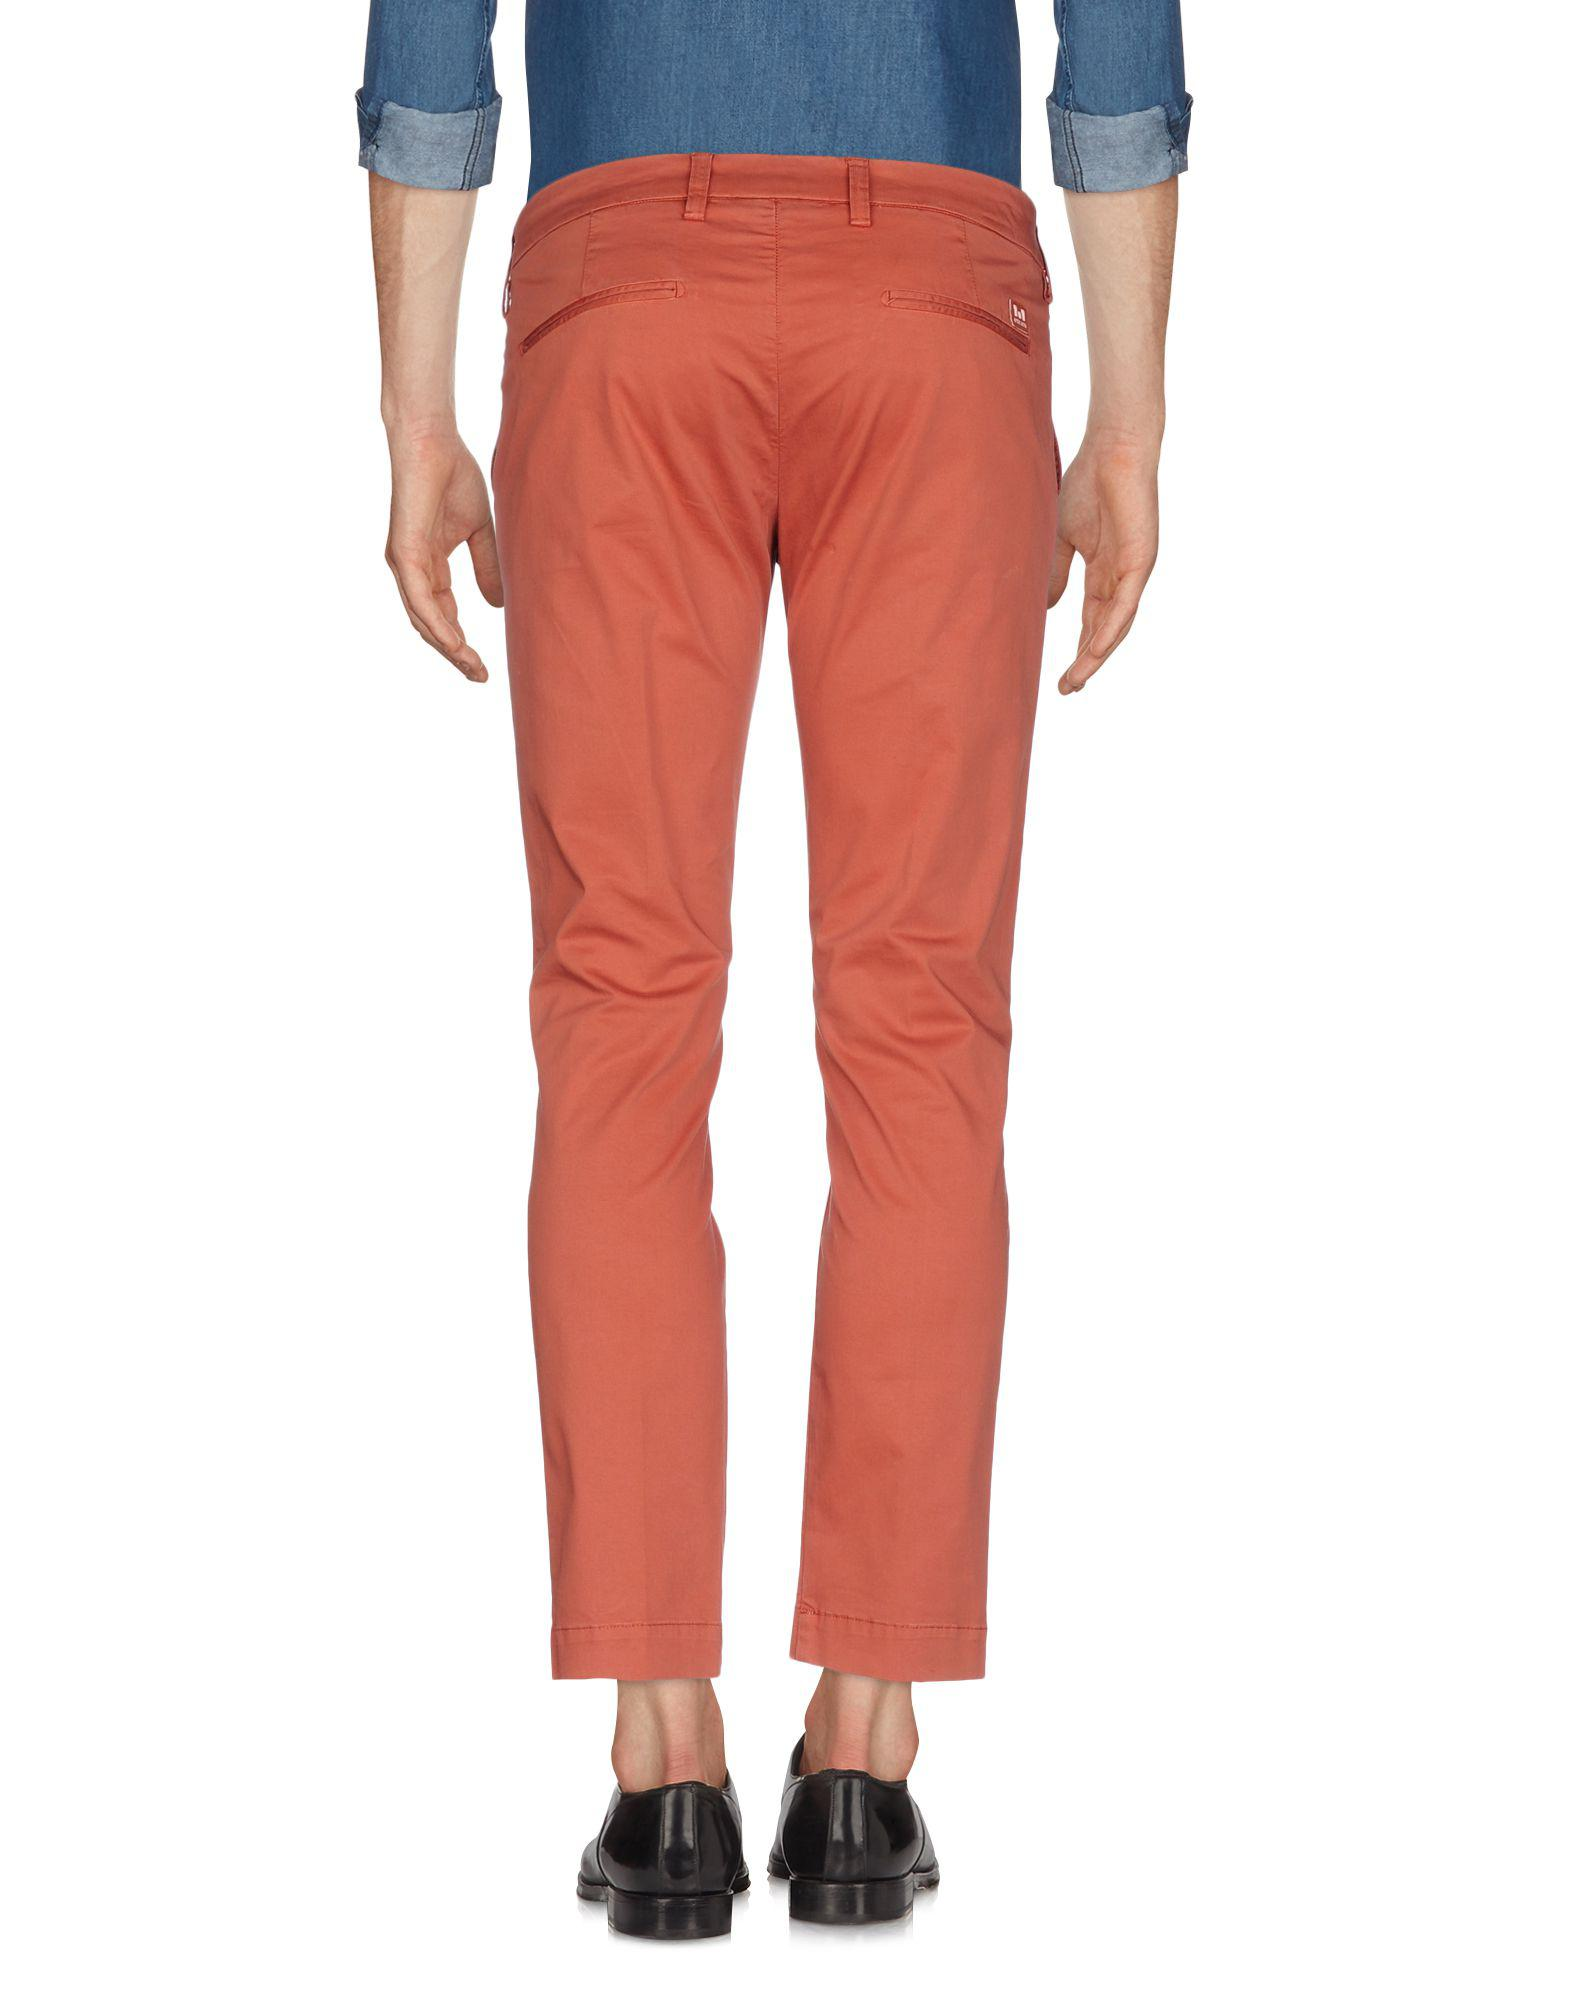 Lyst - Entre Amis Casual Trouser in Red for Men - Save 20% 6f291085f4b